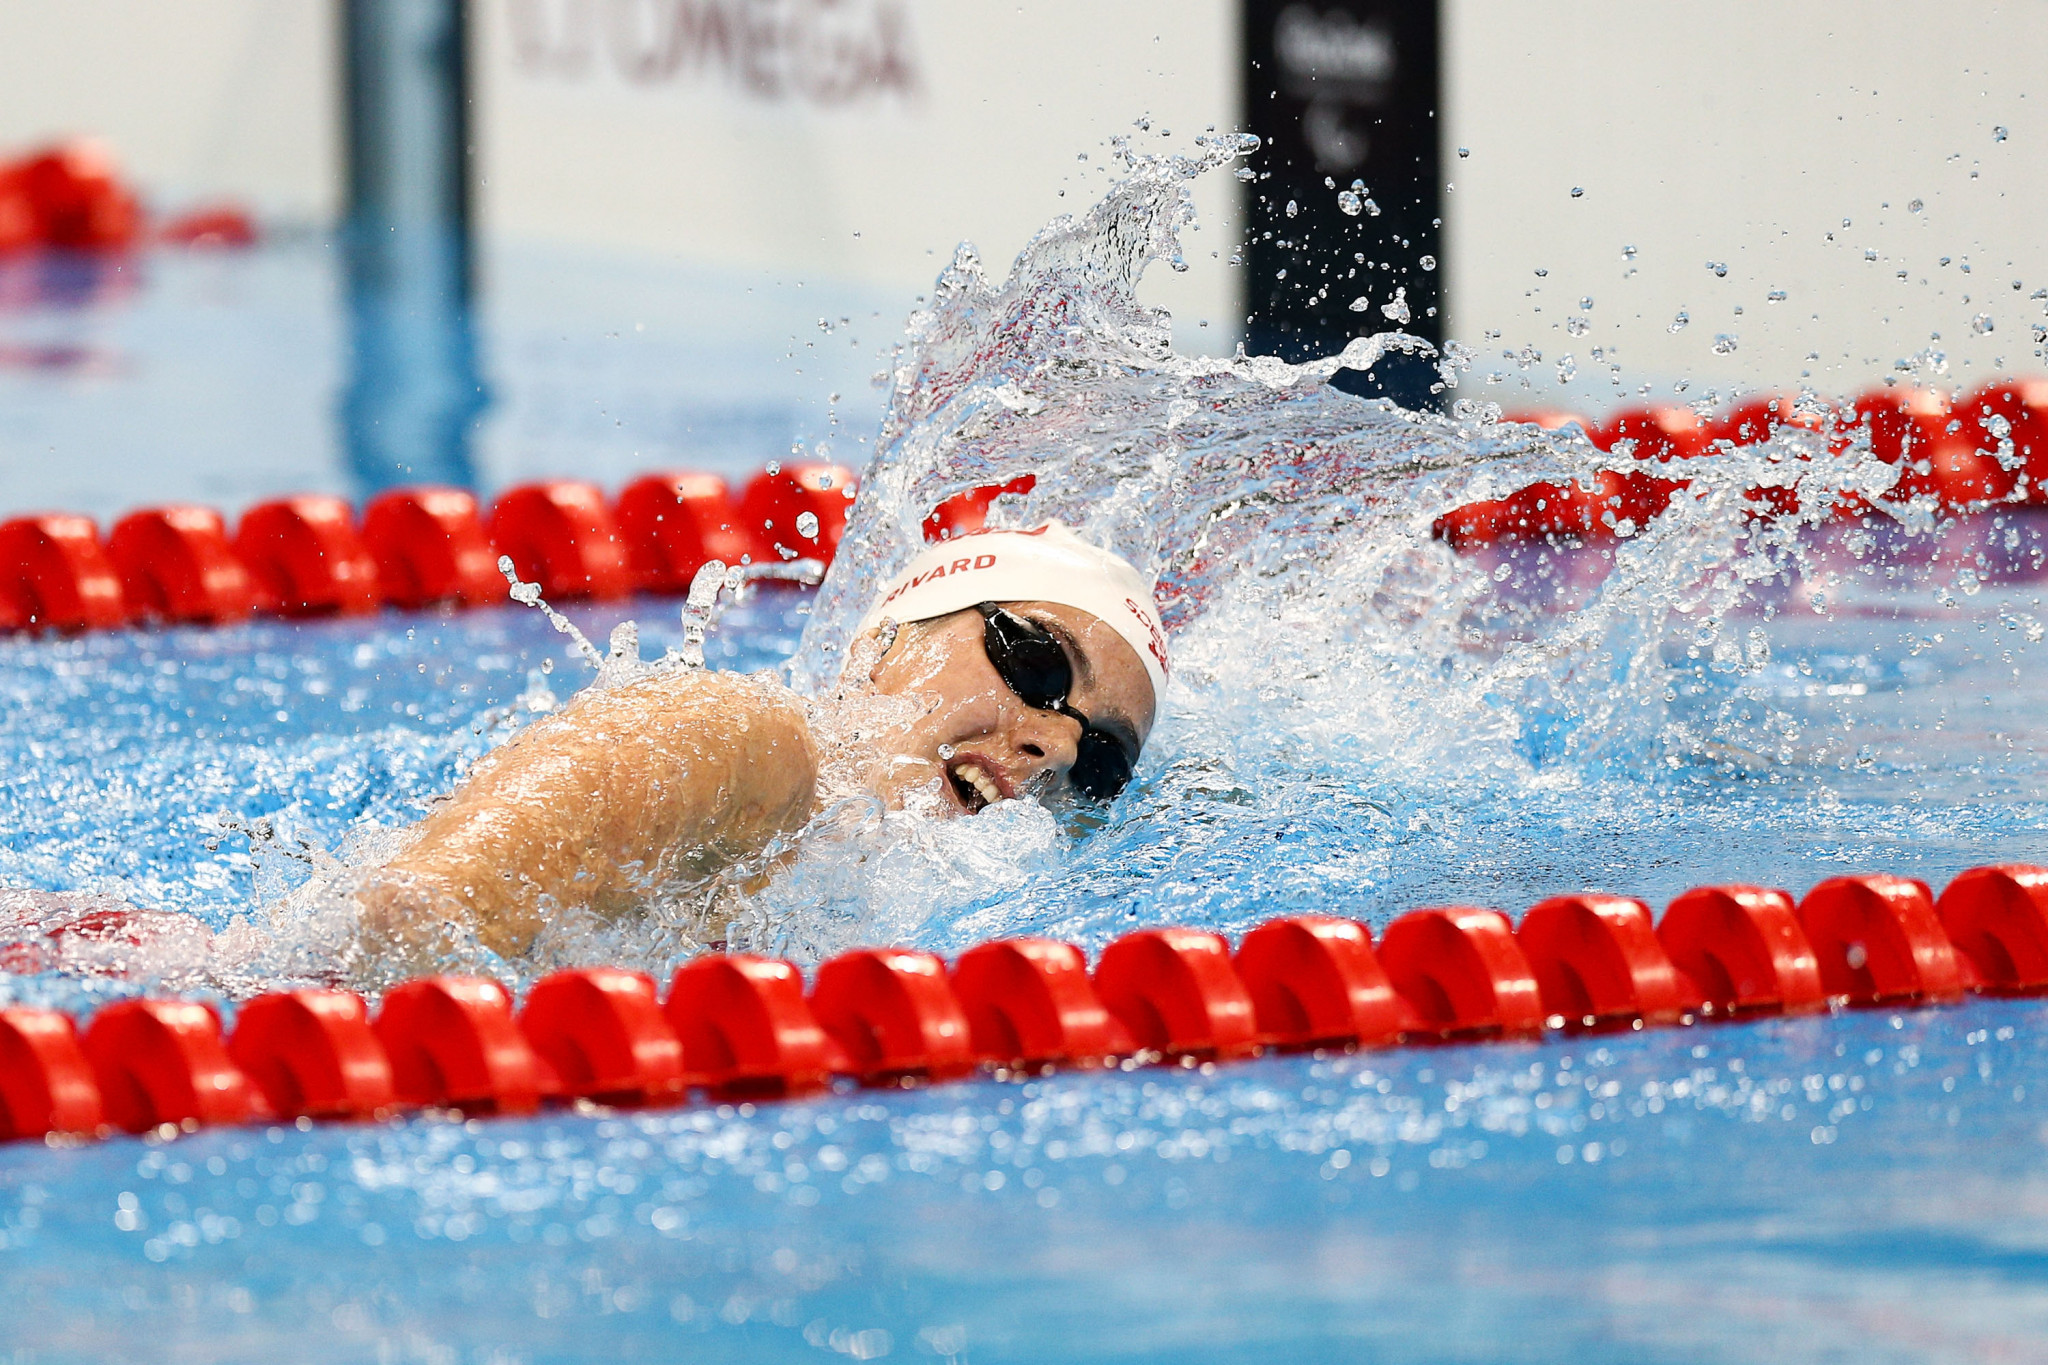 World records fall on opening day at Pan Pacific Para Swimming Championships